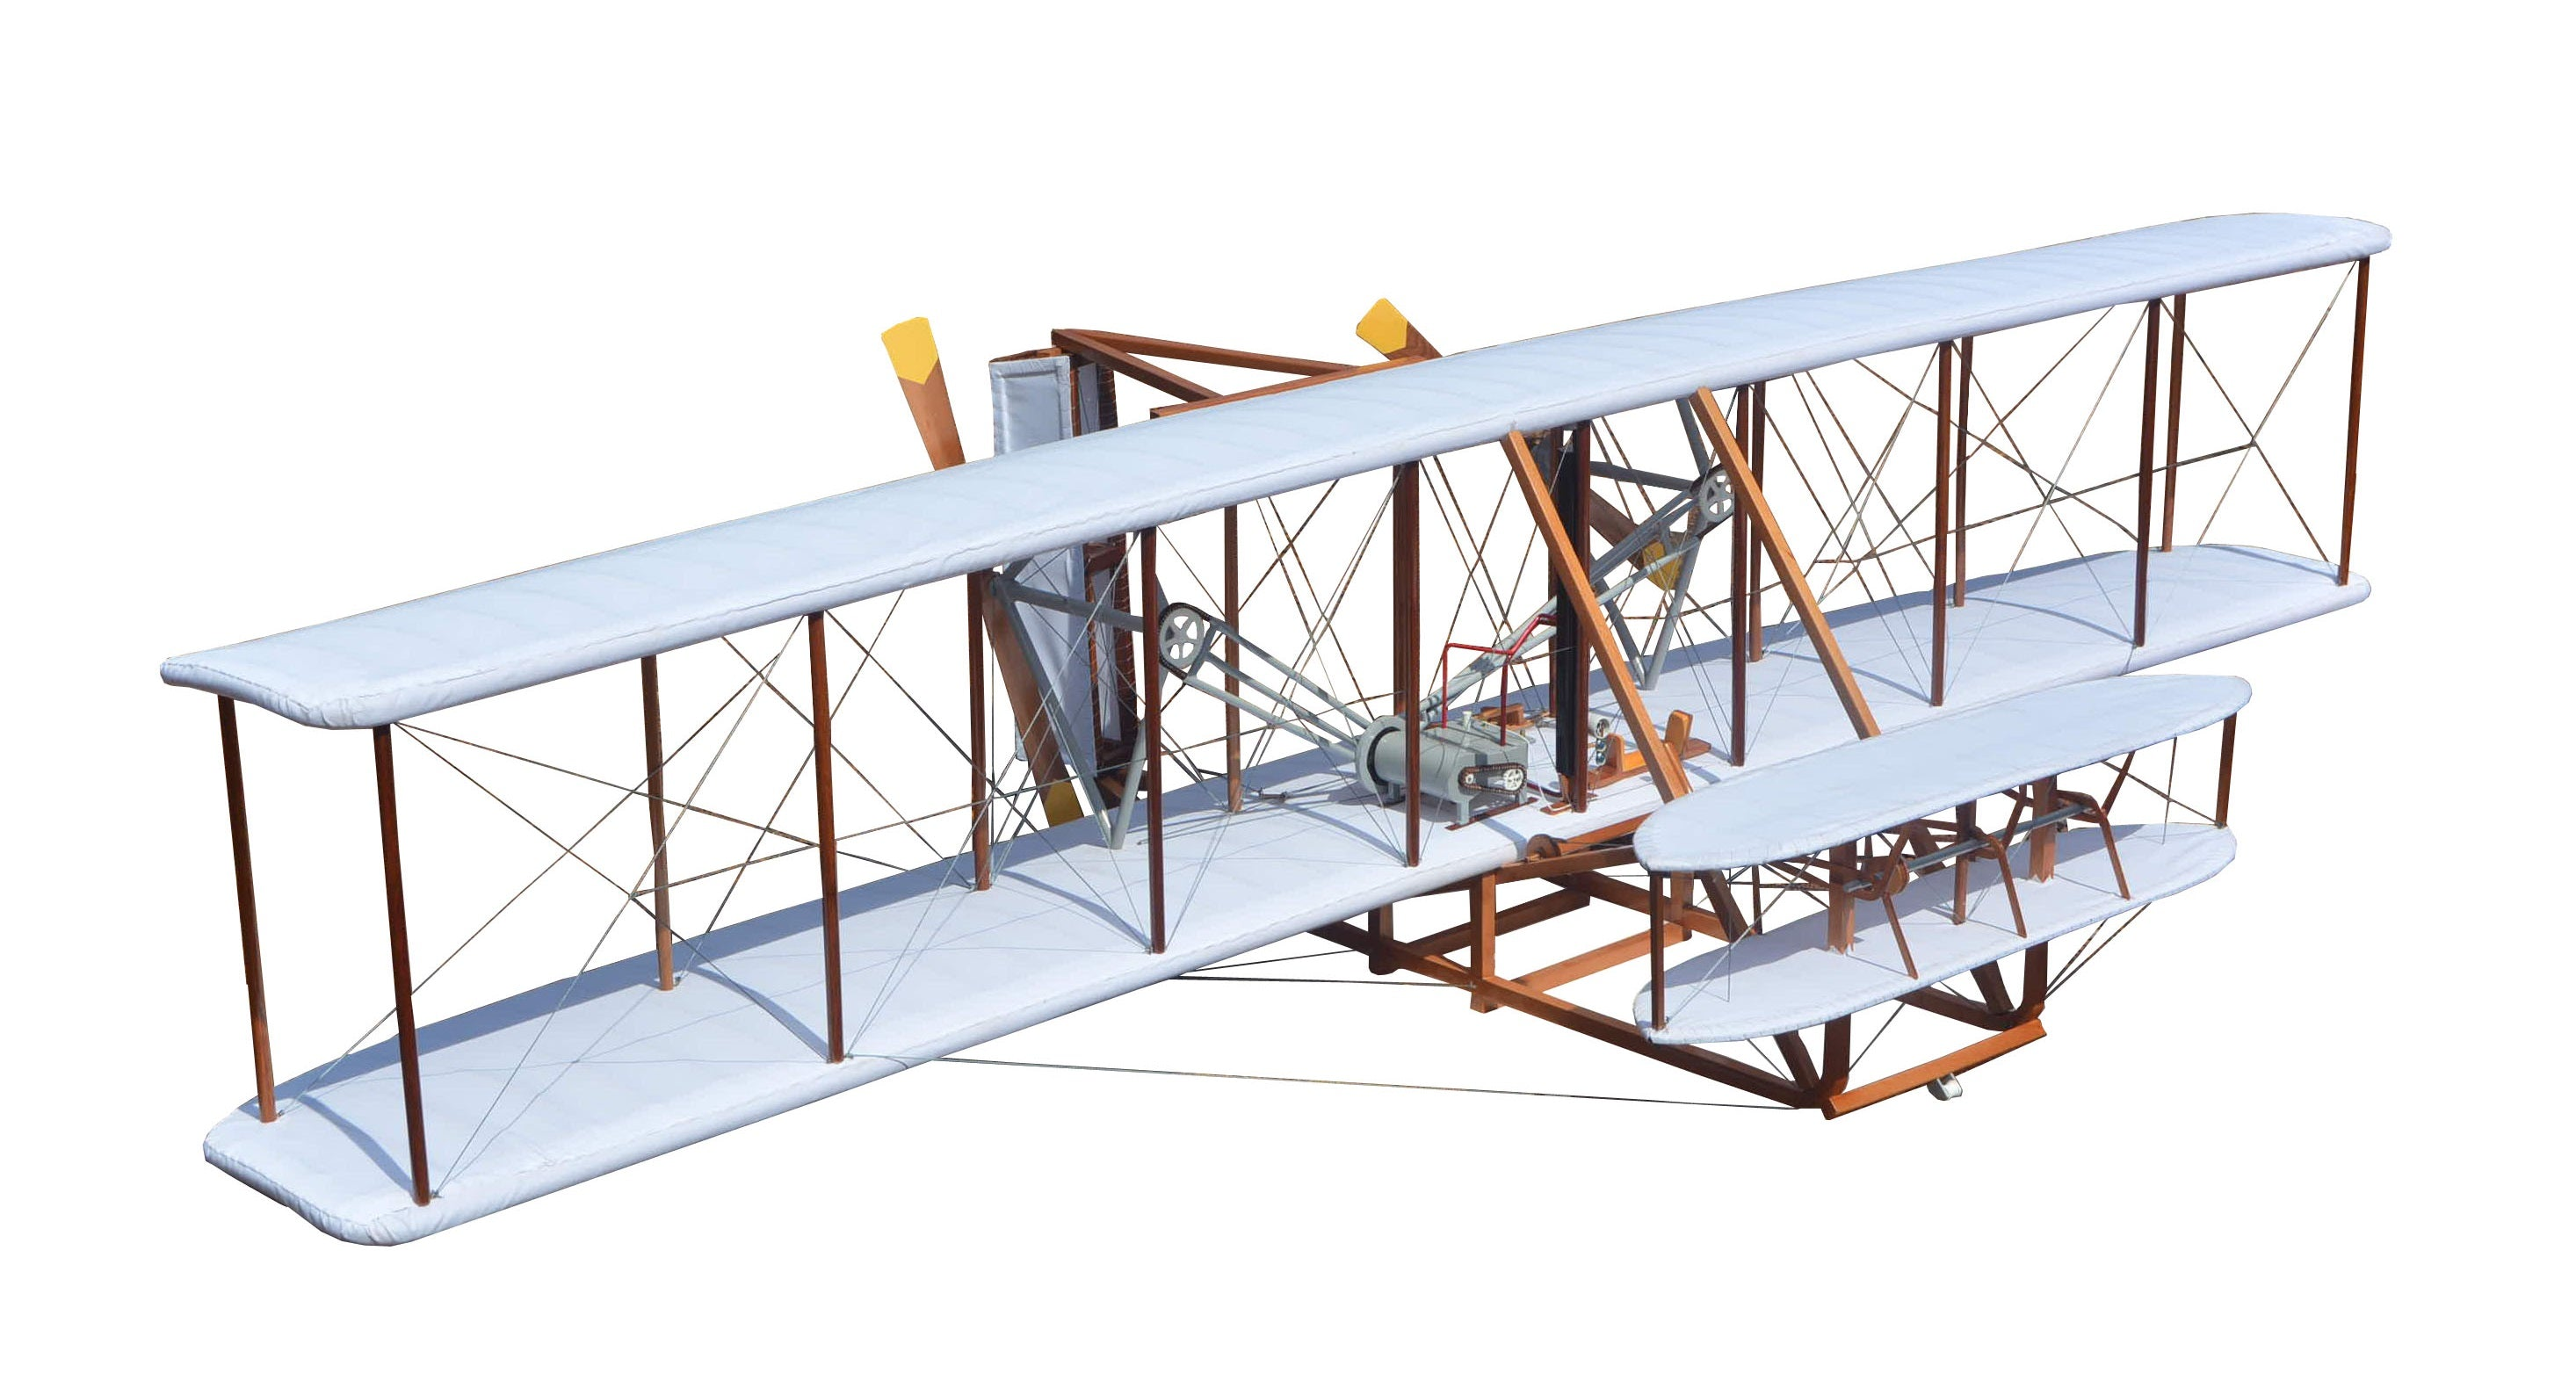 1903 Wright Brother Flyer Model Scale 1:10